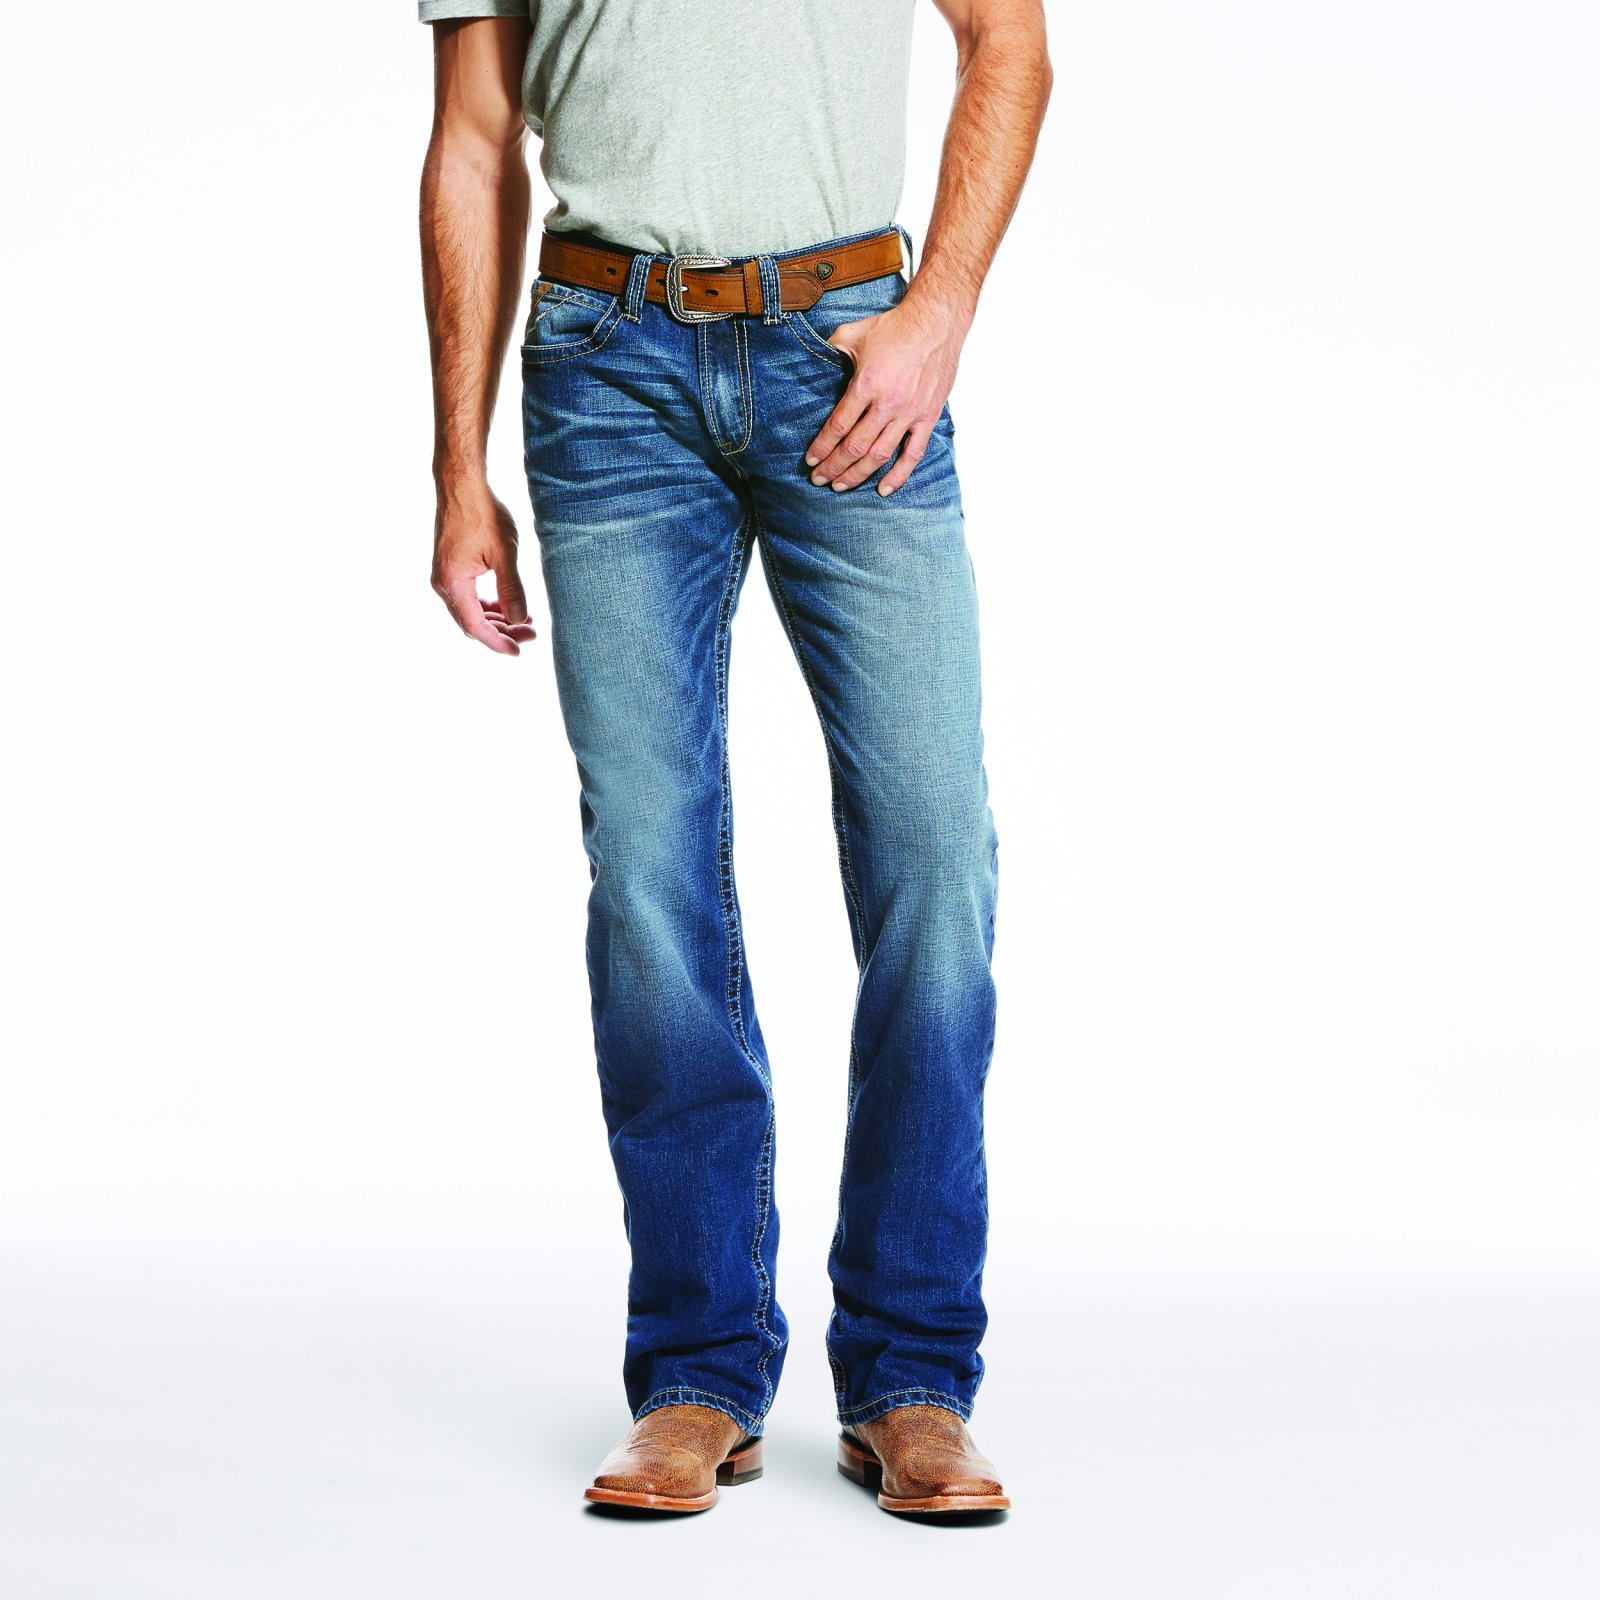 Men's M4 Summit Jean from Ariat